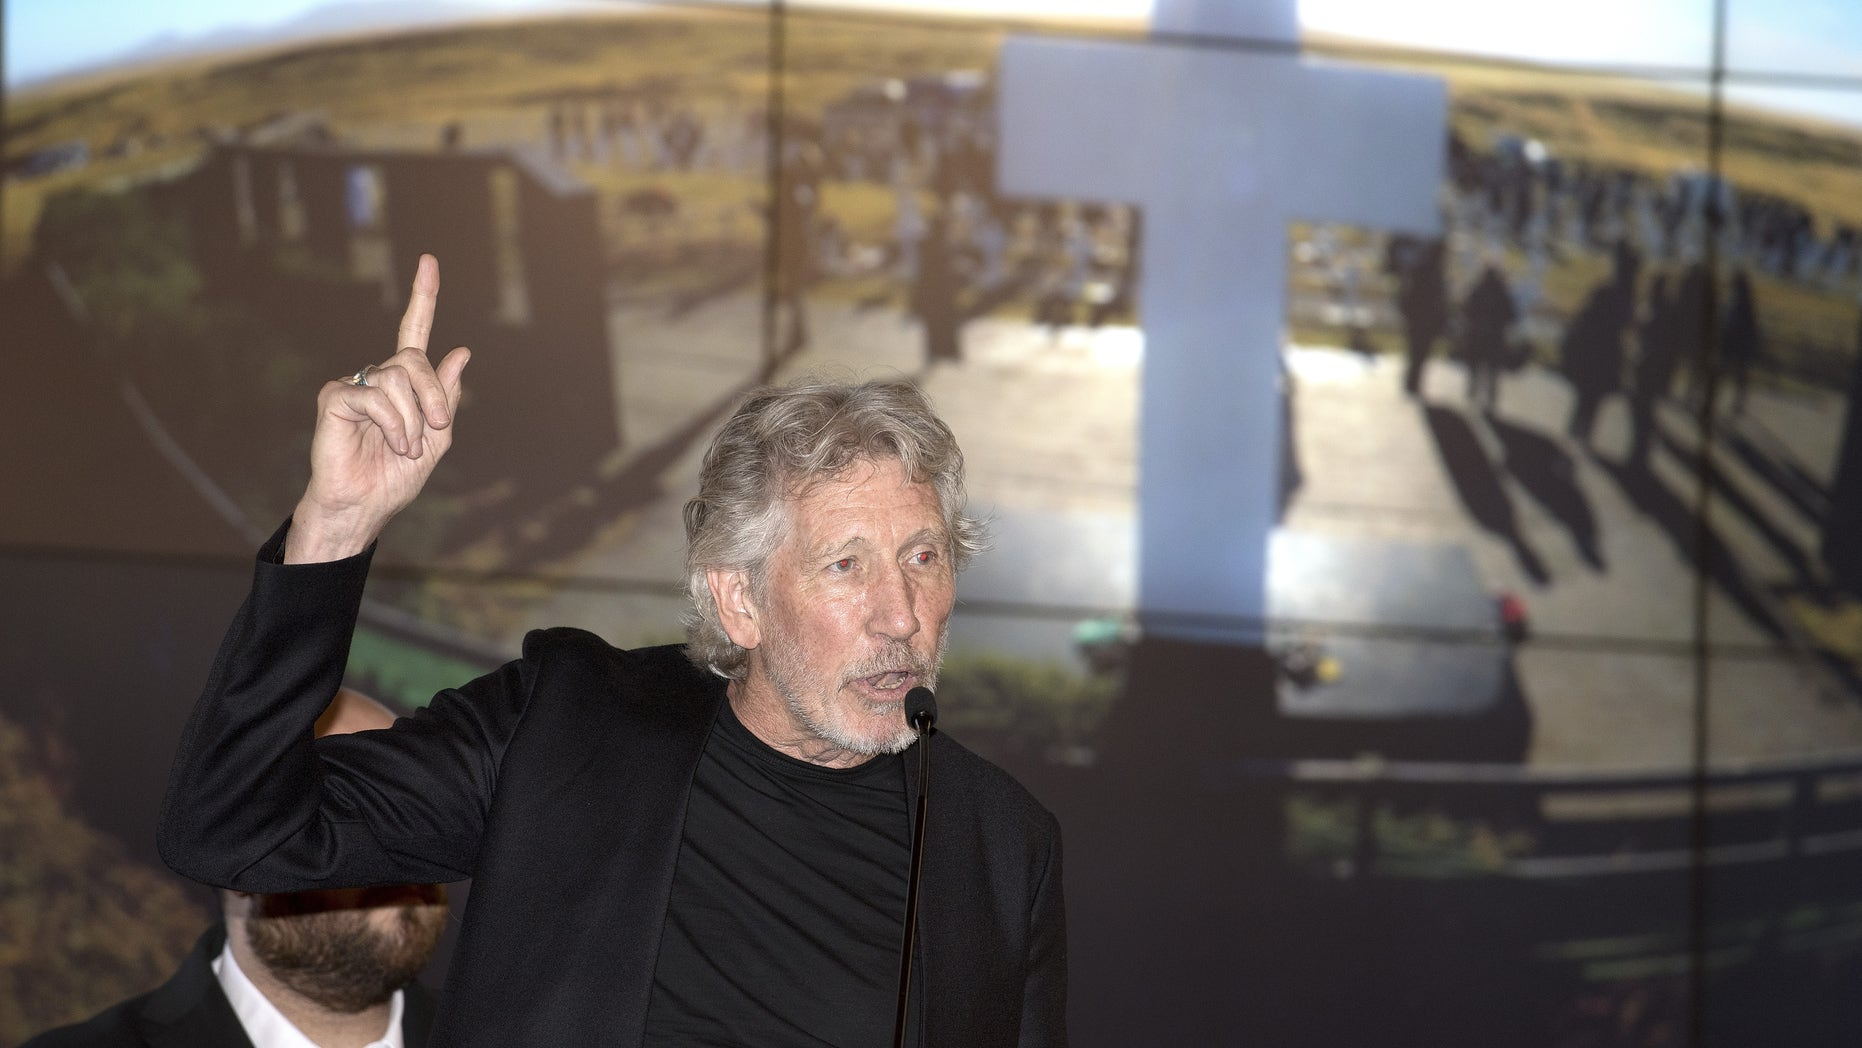 Roger Waters pleaded with Maroon 5, Big Boi and Travis Scott to kneel during Super Bowl Halftime Show performance.